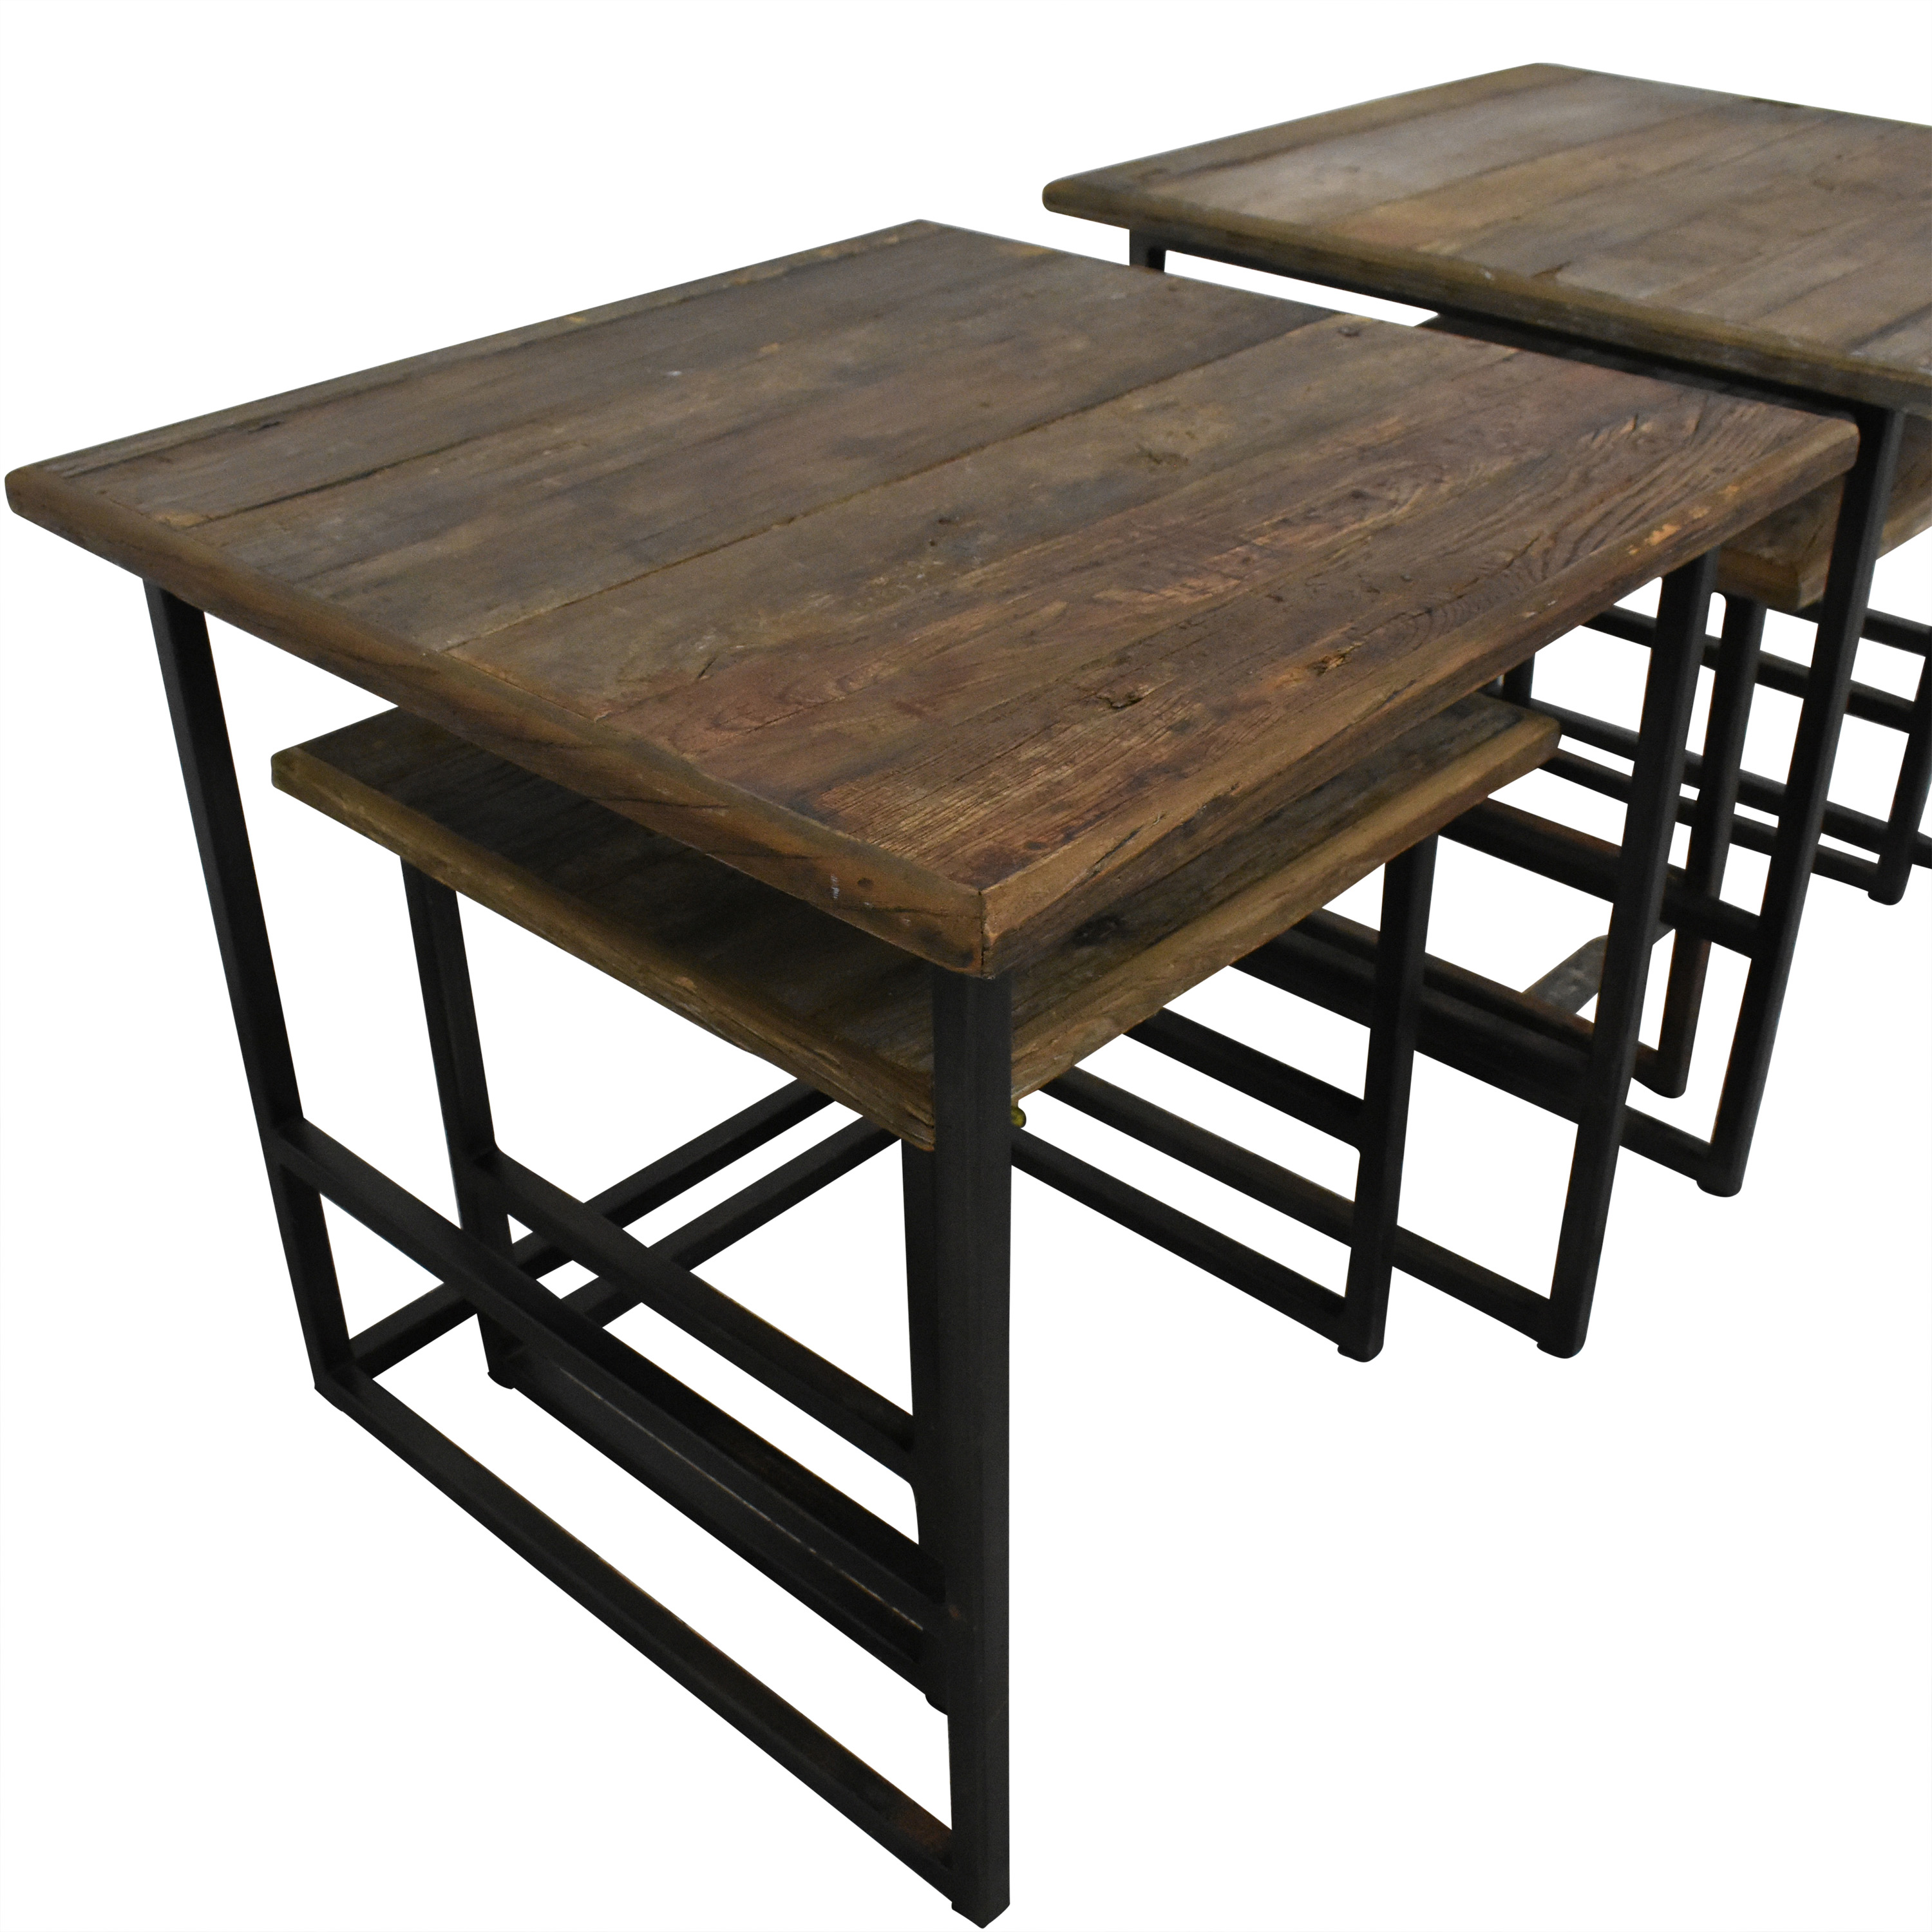 Restoration Hardware Restoration Hardware Rustic Nesting Side Tables coupon